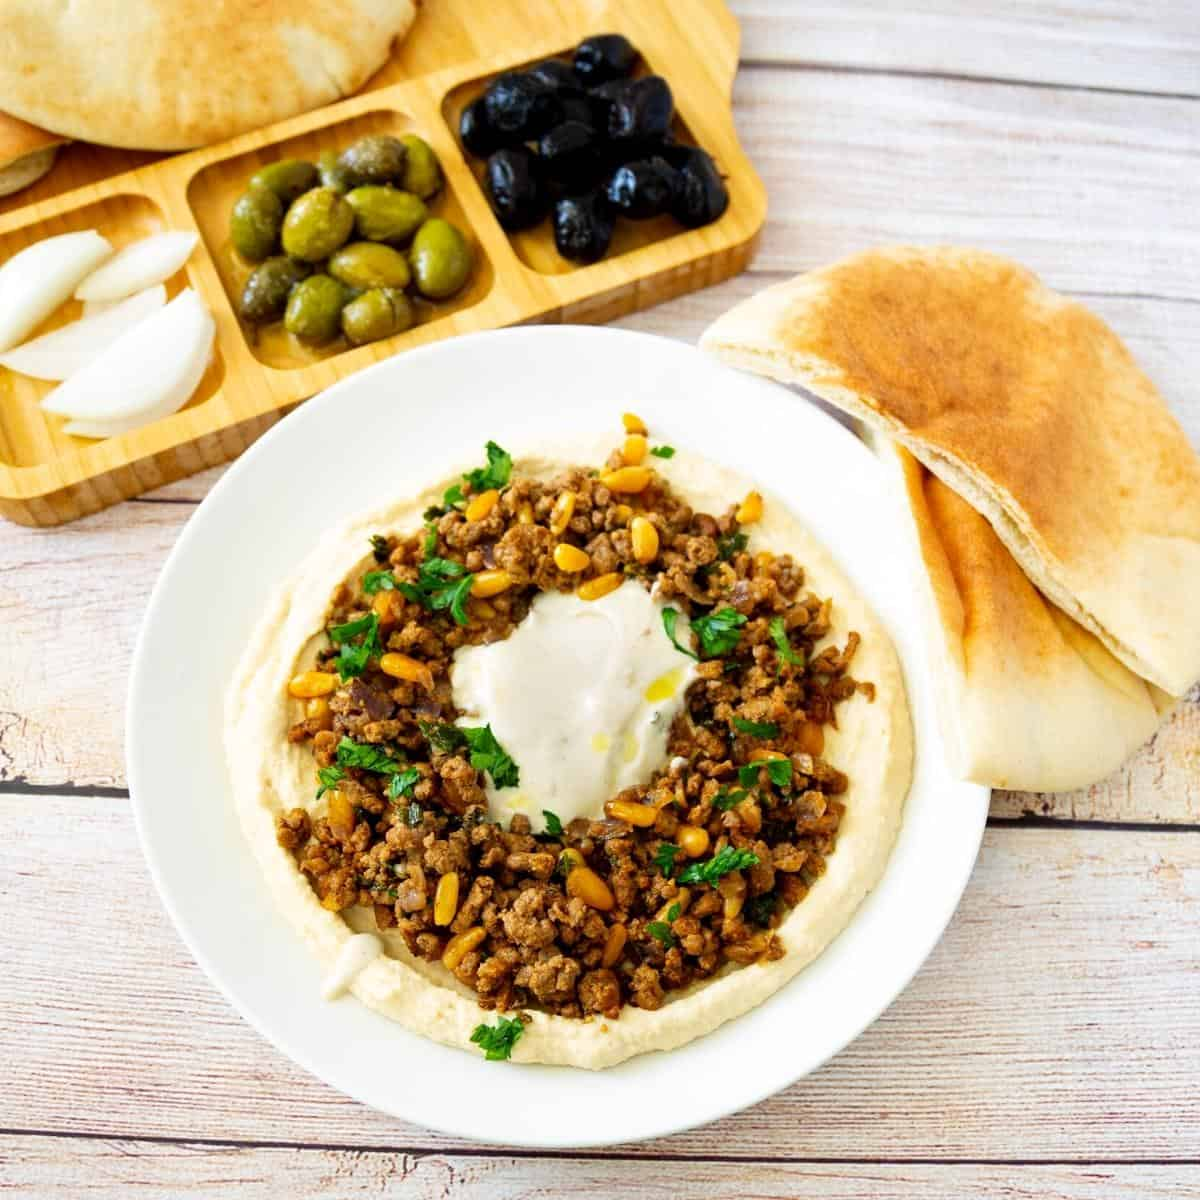 A plate with ground beef and hummus.